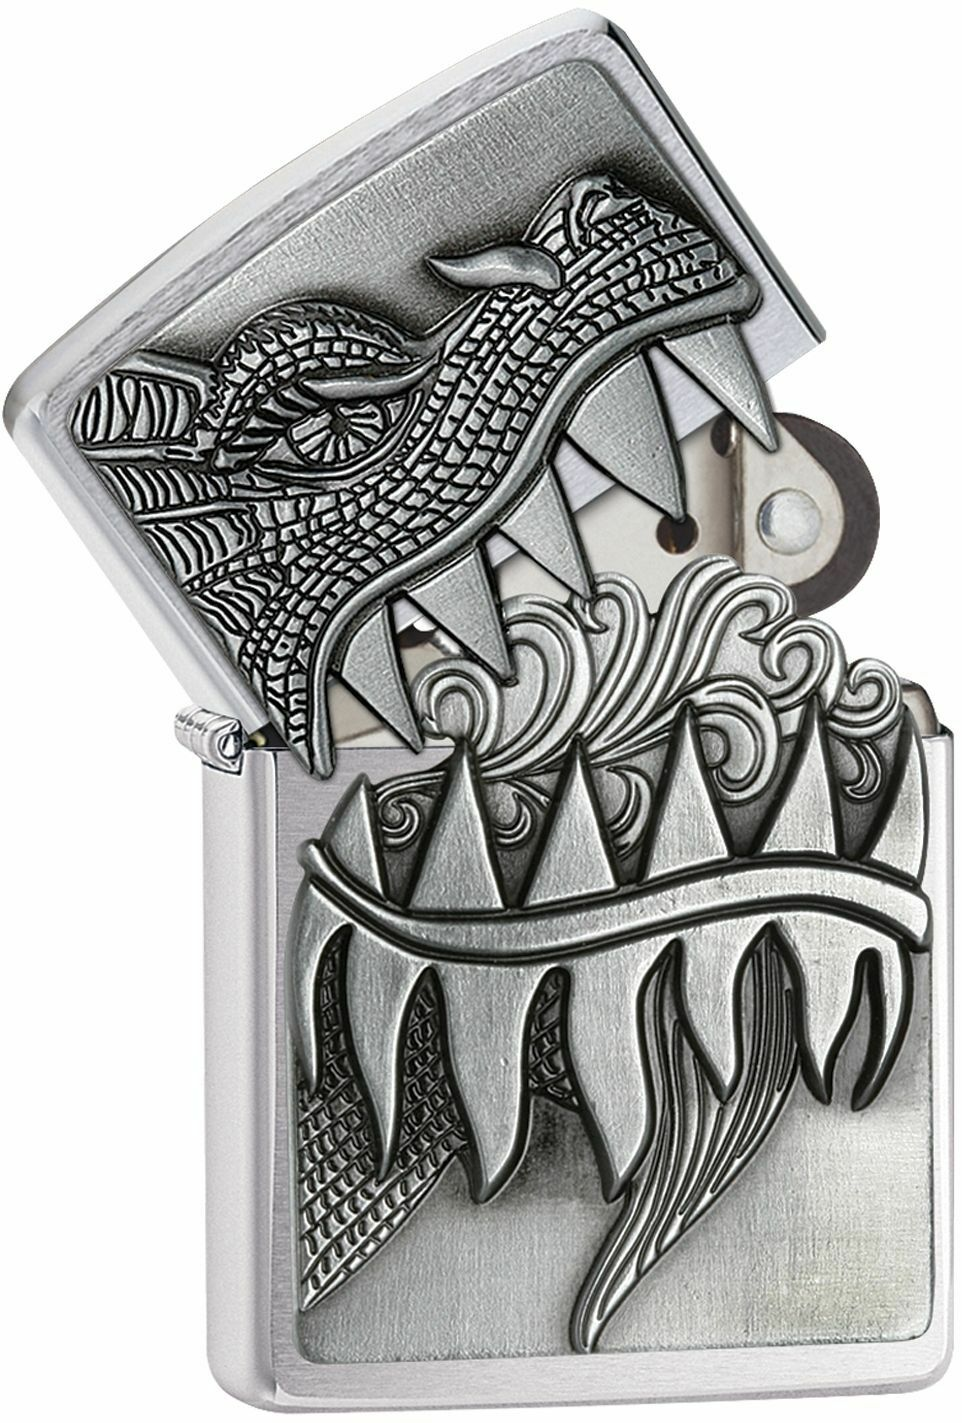 Zippo Windproof Fire Breathing Dragon Lighter, 28969, New In Velour Box